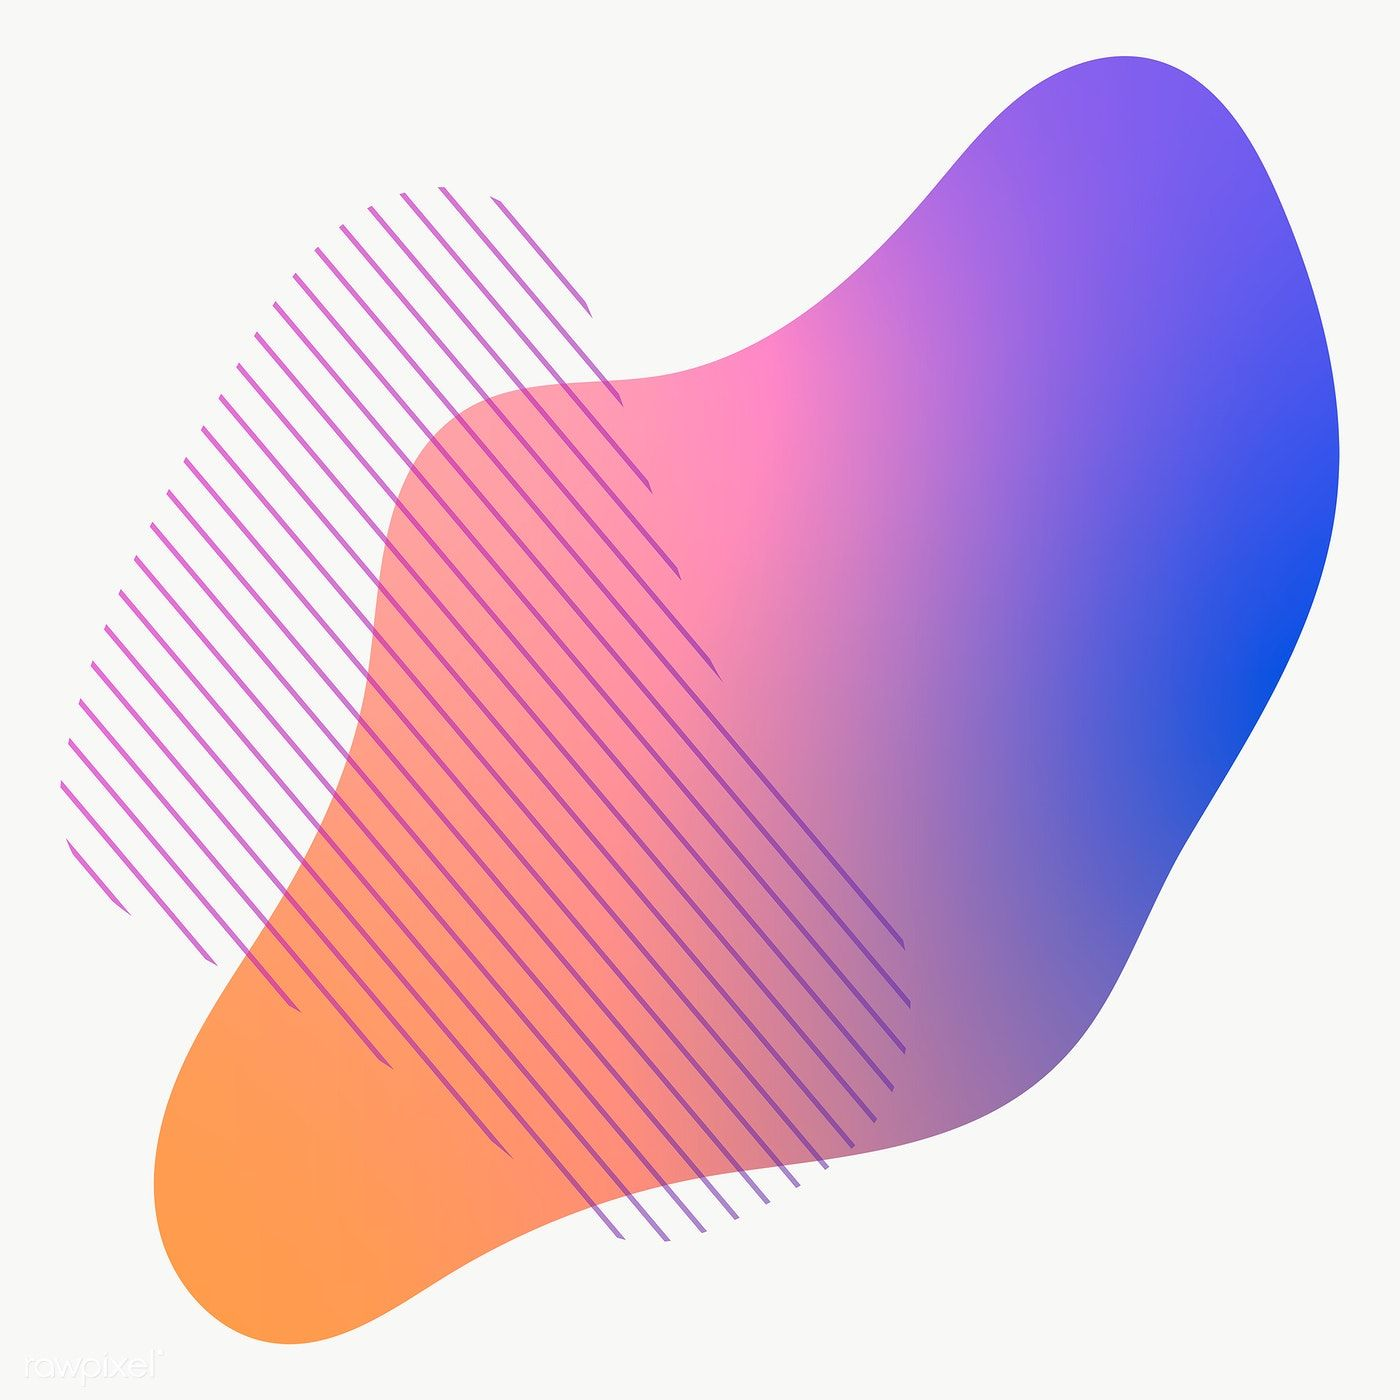 Colorful Gradient Element With Lines Free Image By Rawpixel Com Nunny Stock Images Free Gradient Png